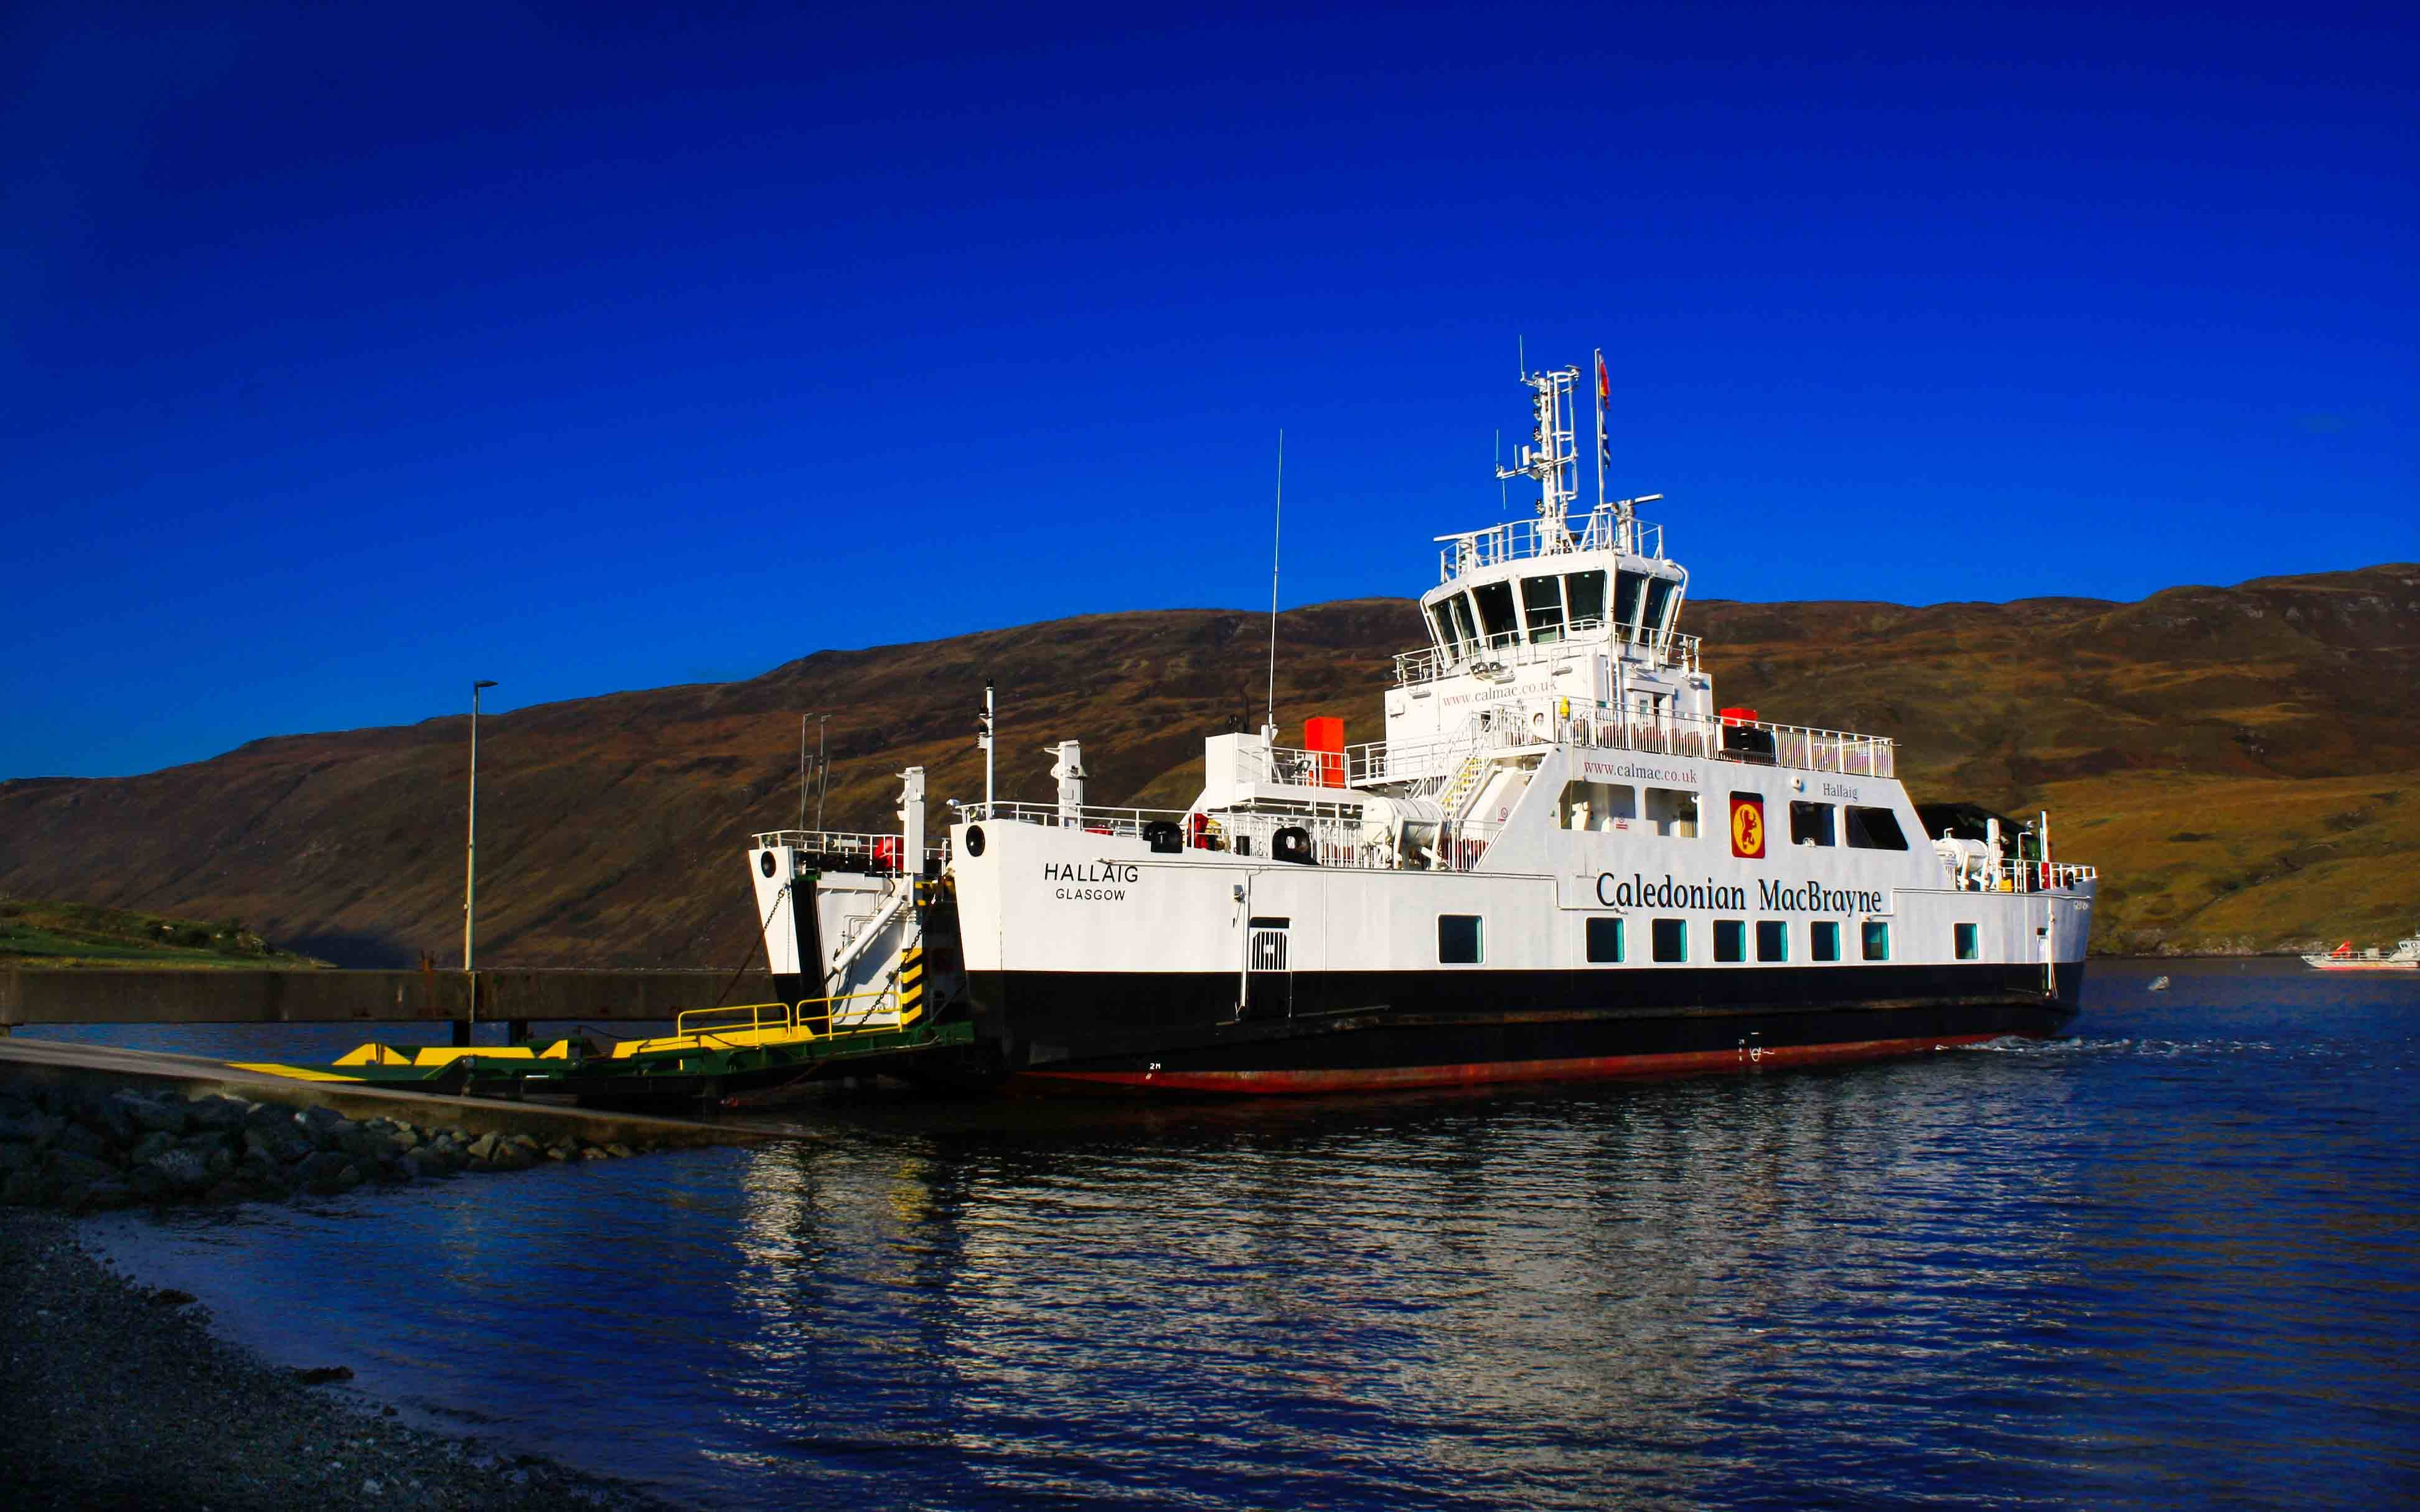 Hallaig at Sconser (Ships of CalMac)